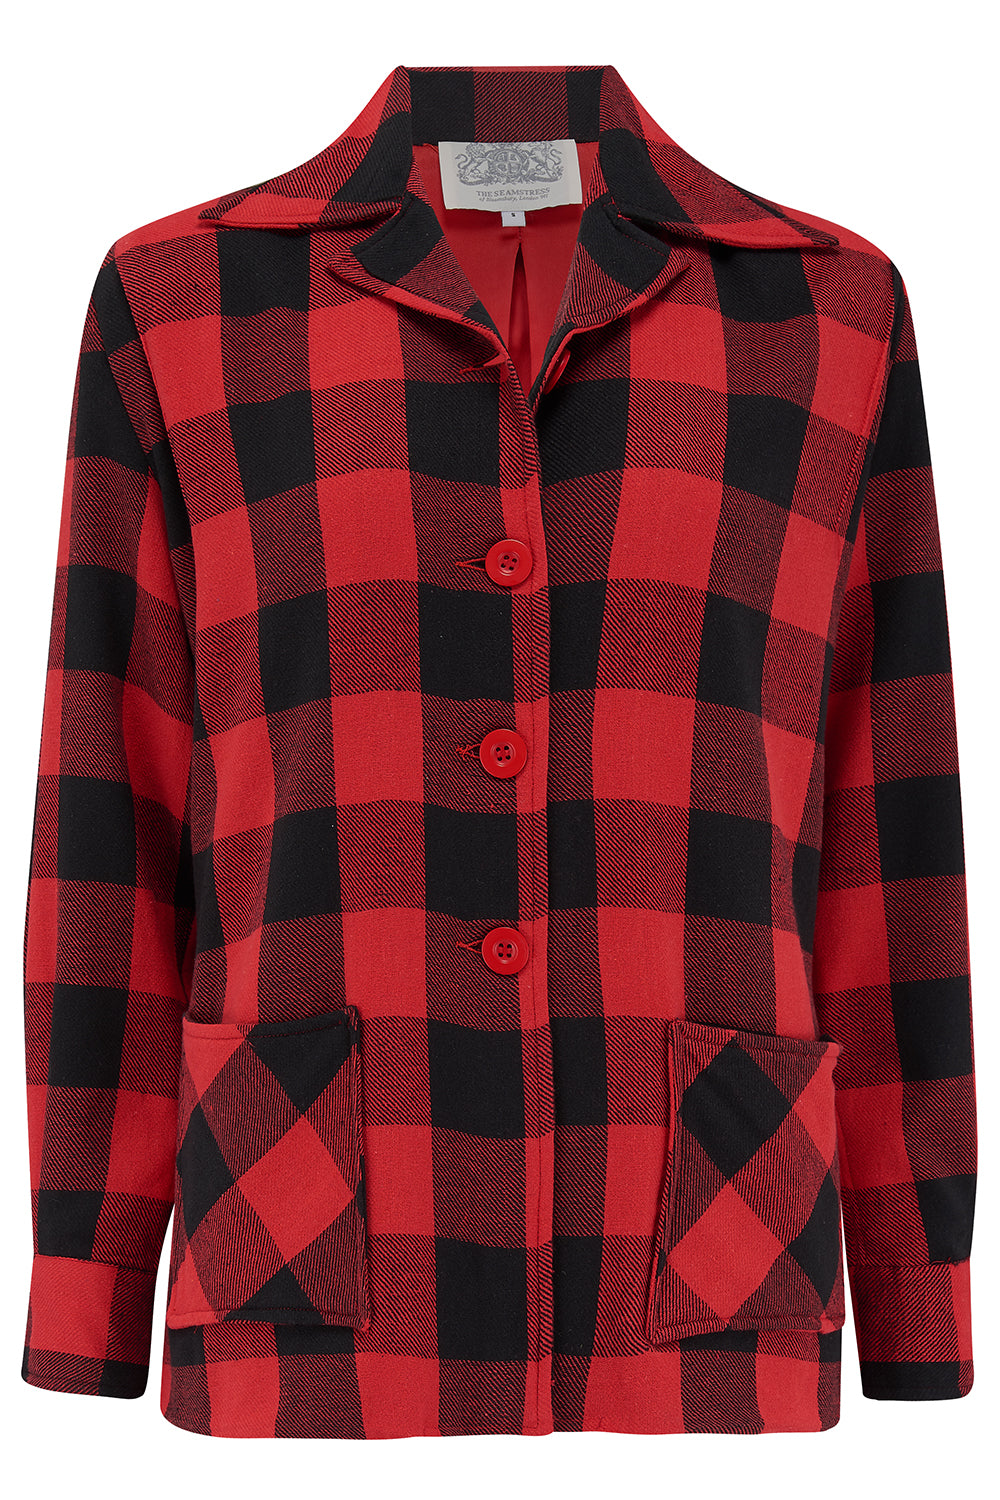 """Pearl"" Pendleton 49er Style Jacket in 40s red/black Buffalo check, Classic & Authentic 1940s Vintage Style - RocknRomance True 1940s & 1950s Vintage Style"